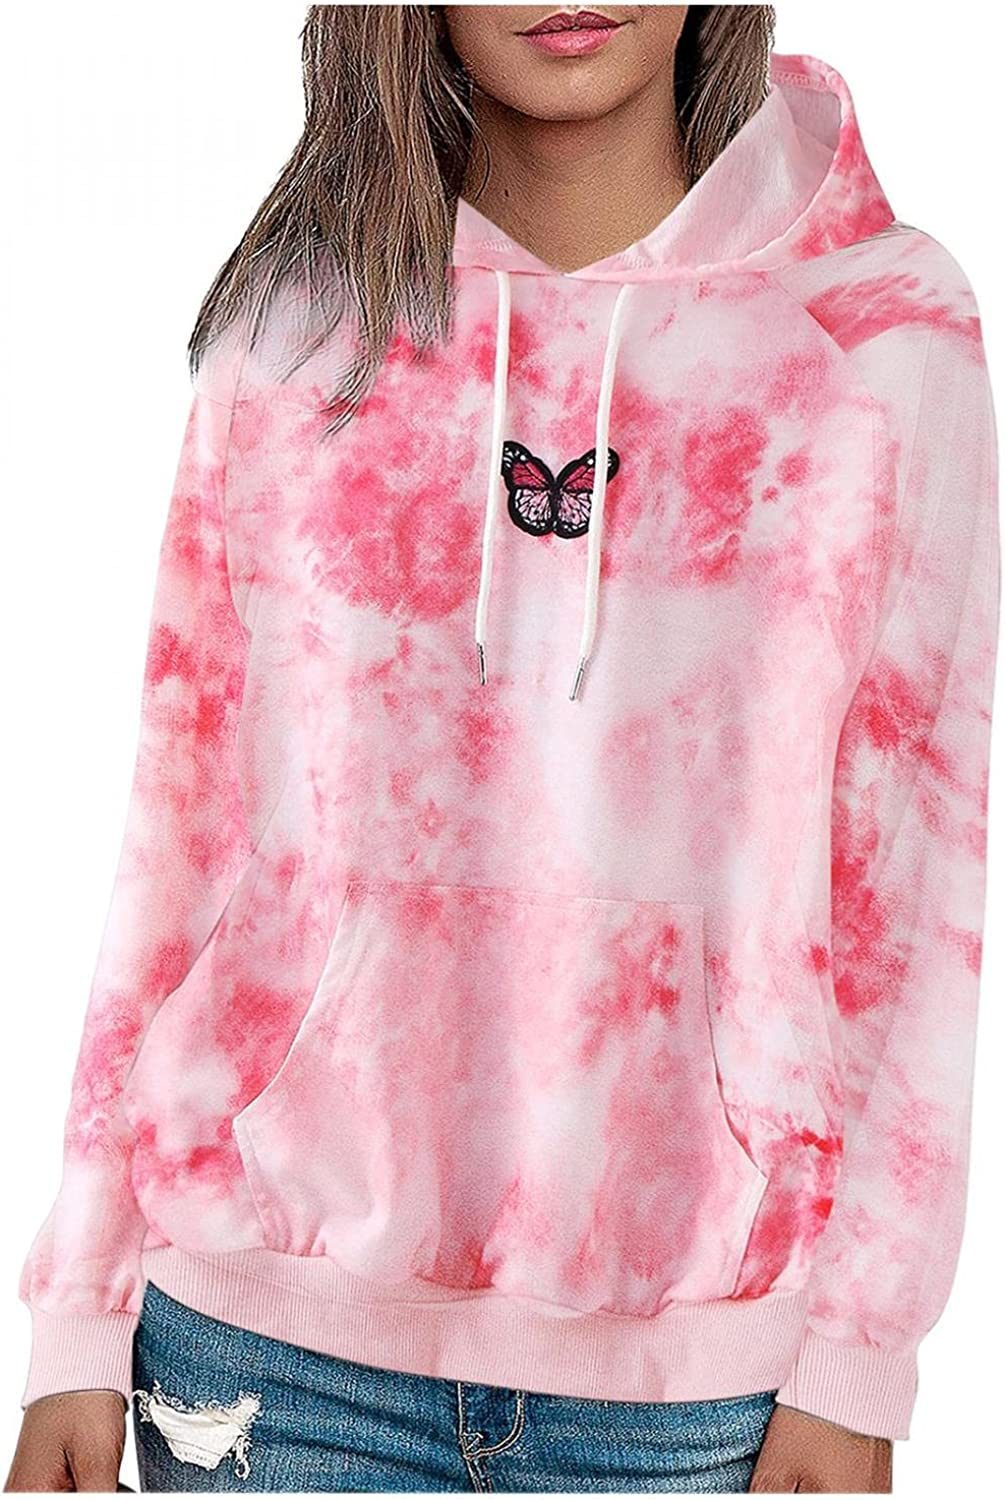 Haheyrte Hoodies for Womens Long Sleeve Cute Butterfly Printing Hooded Casual Sweatshirts Pullover Tops Sweaters Blouse